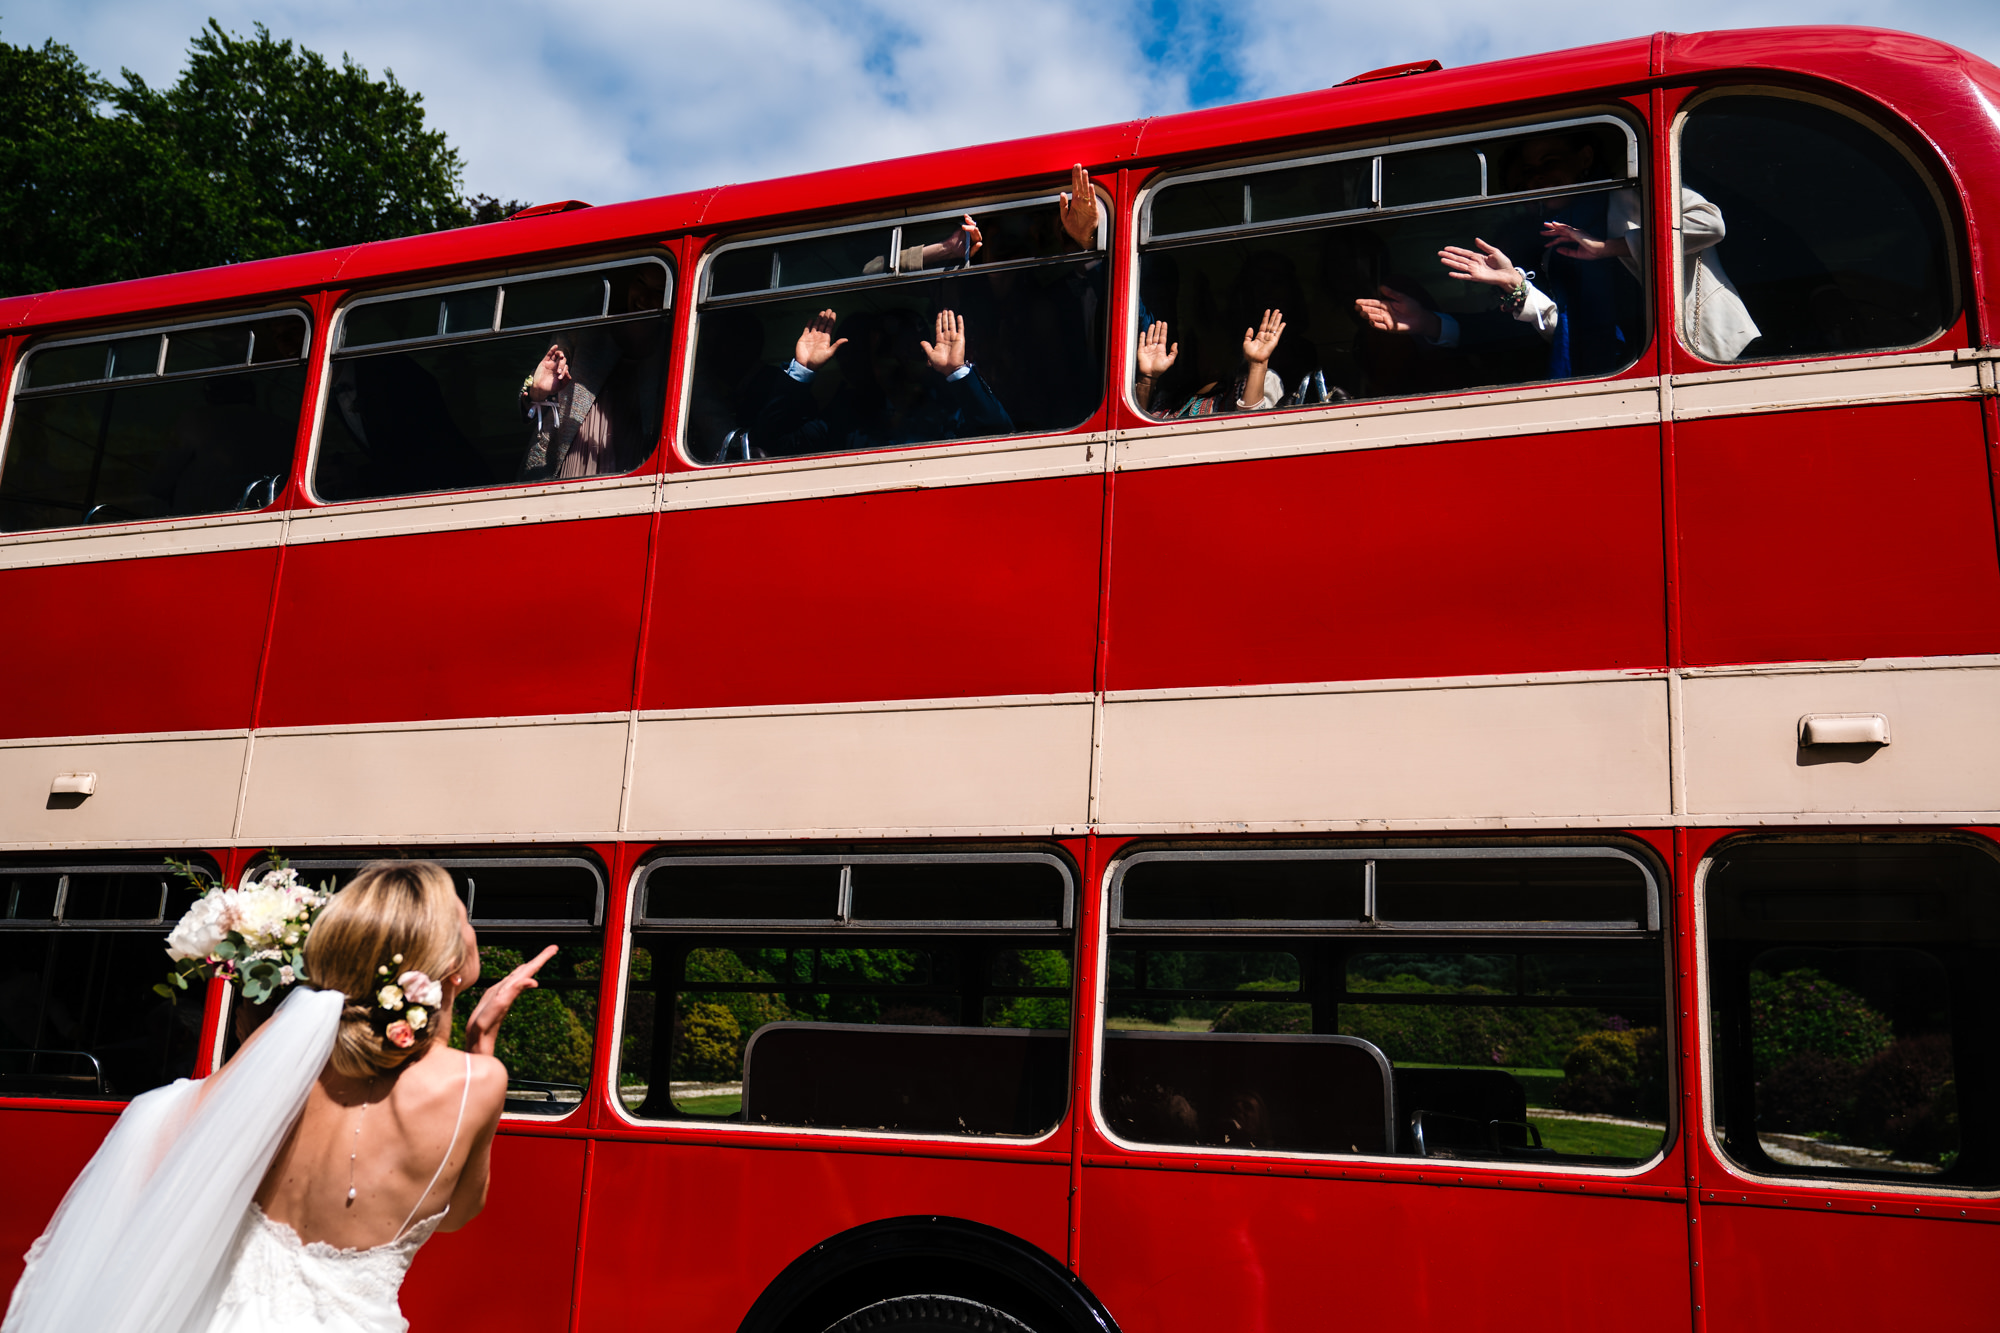 Bride waves goodbye to guest in double decker bus Yves Schepers